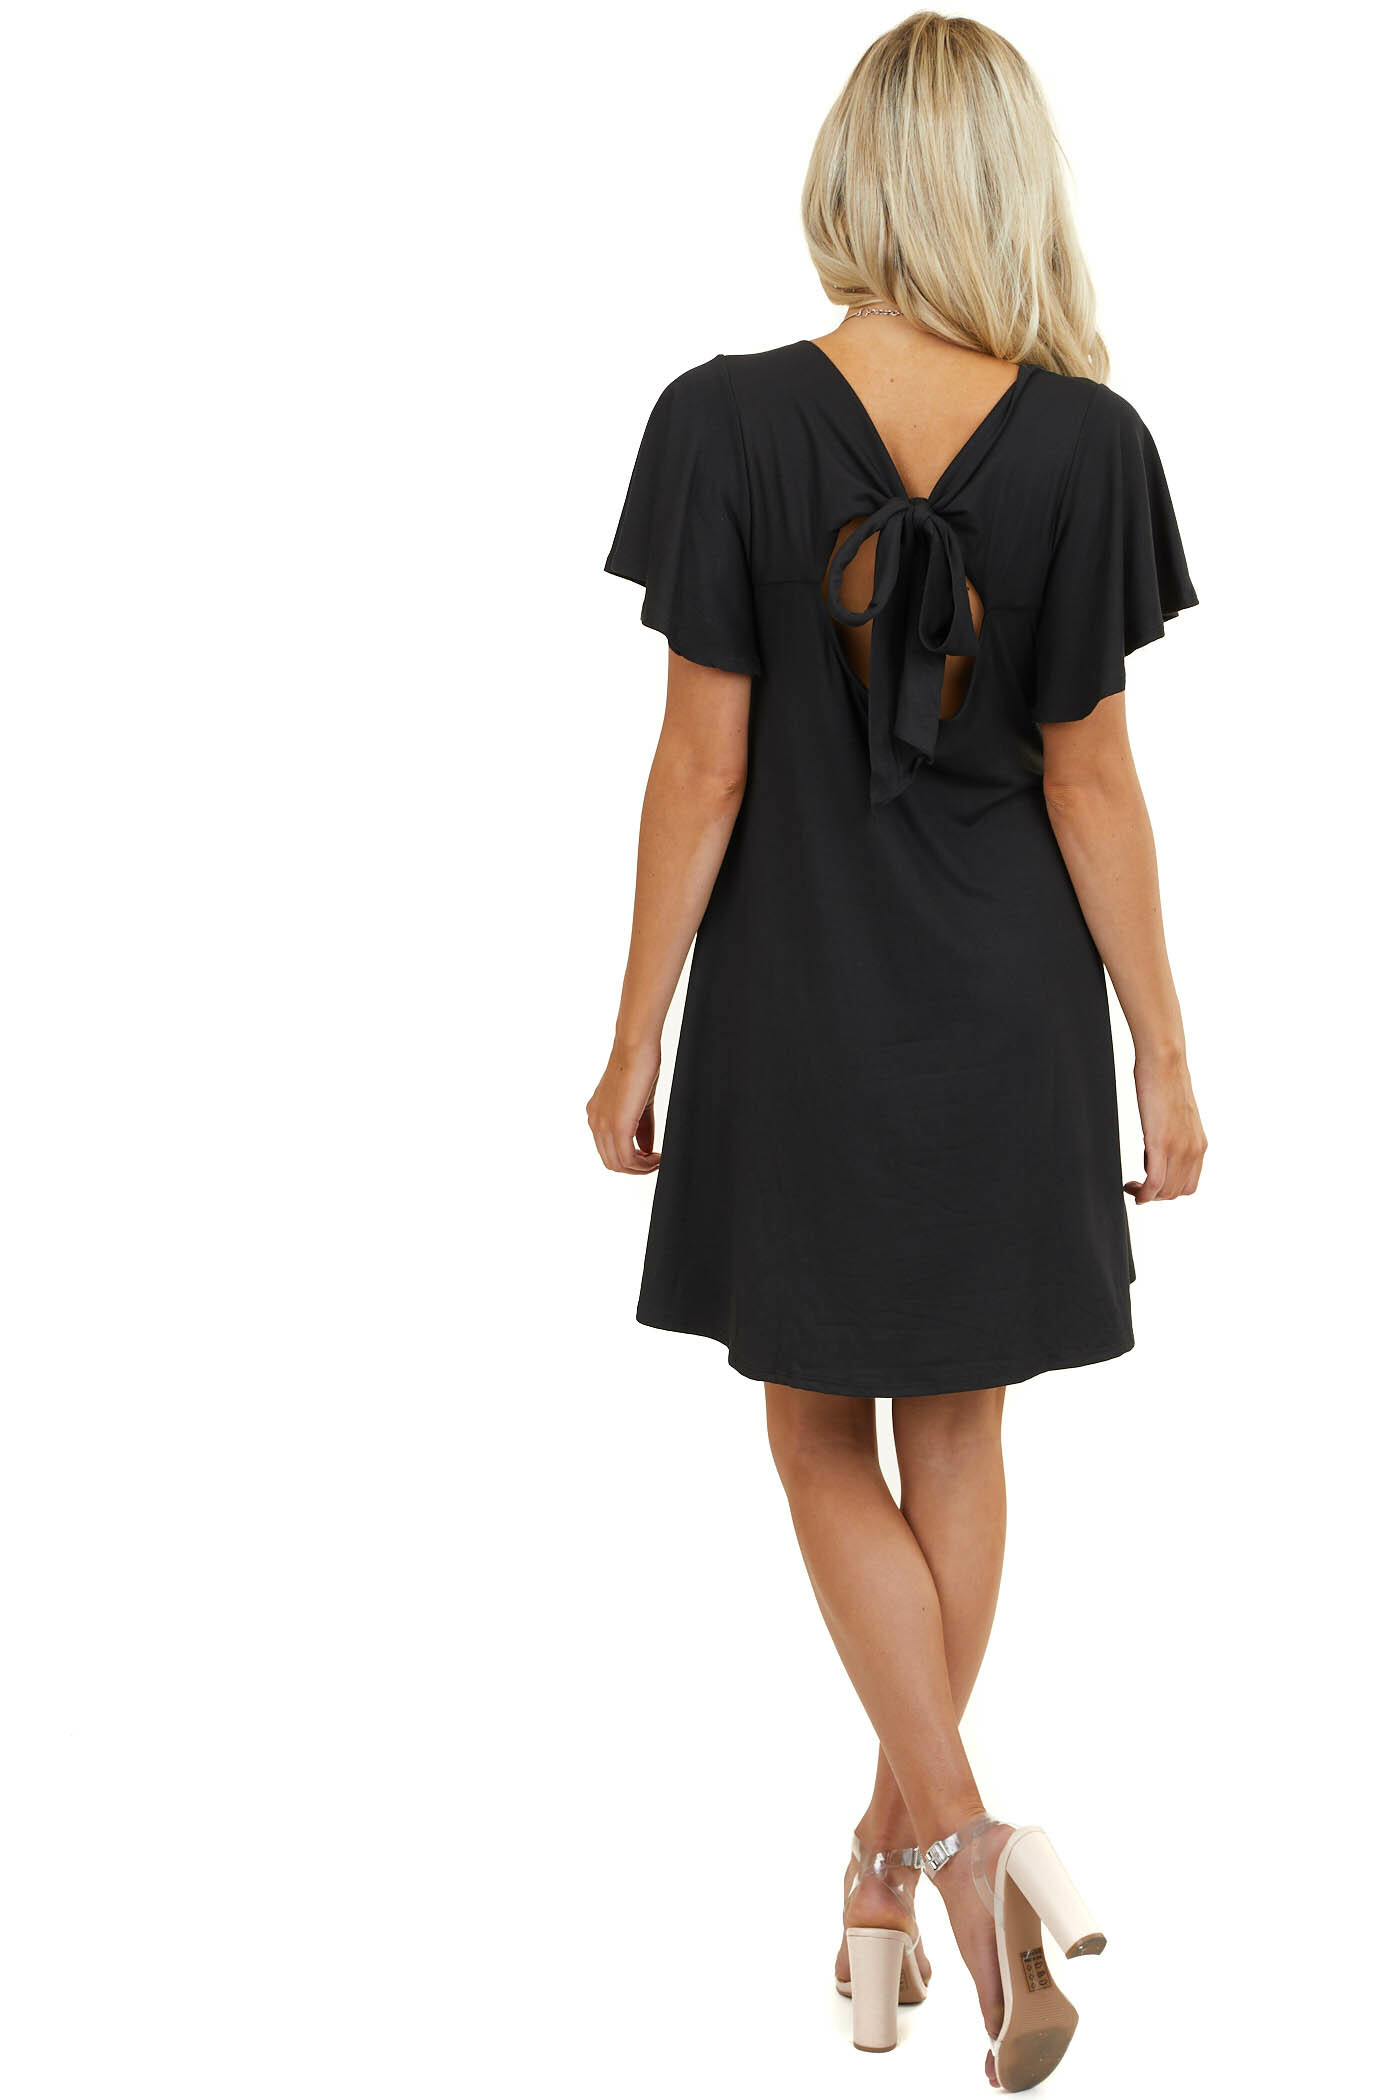 Black Keyhole Back Mini Dress with Tie Detail and Pockets